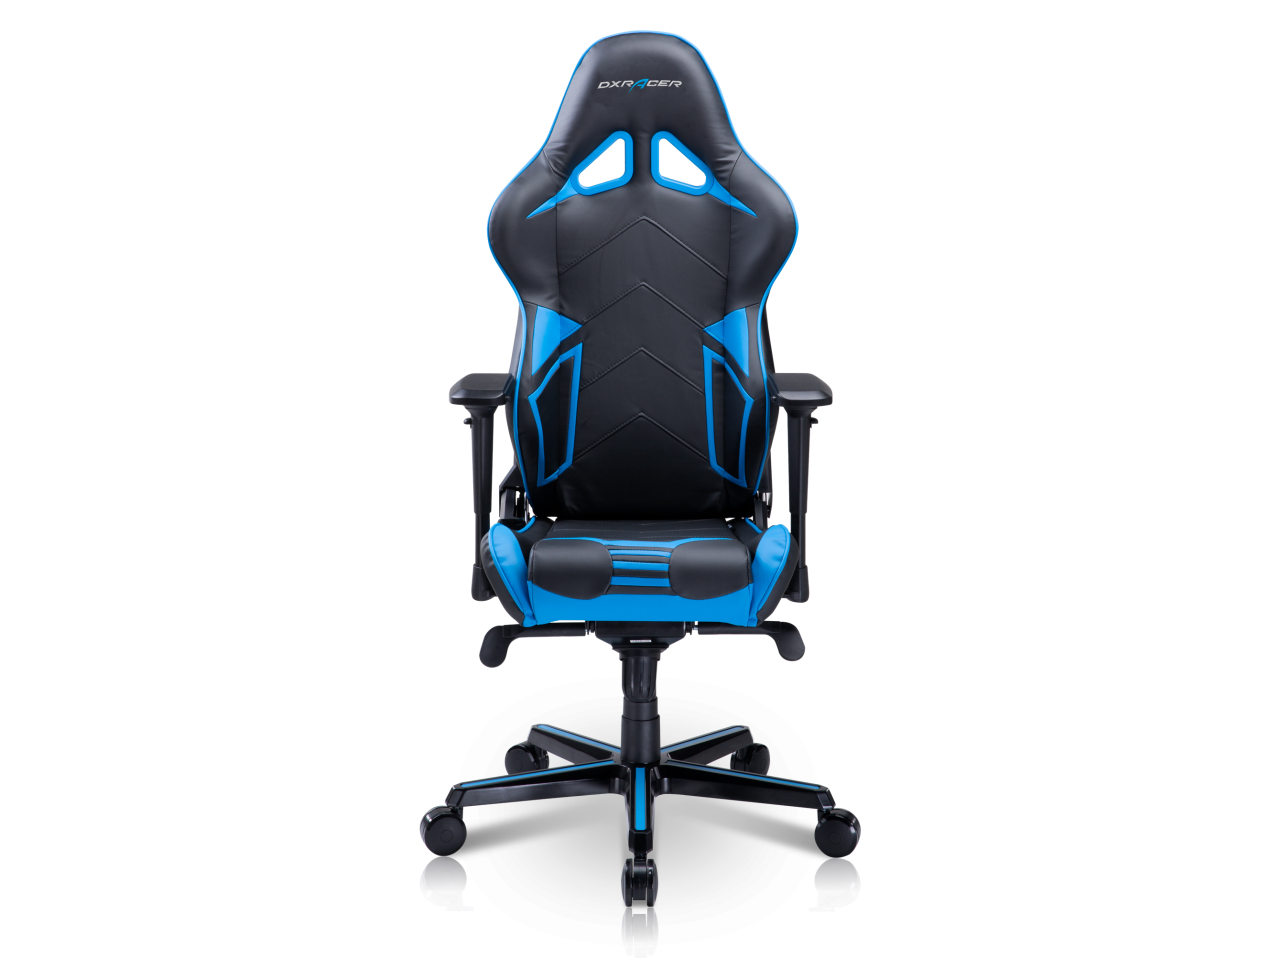 Warranty DXRacer OH//RV131//NR Black /& Red Racing Series Gaming Chair Ergonomic High Backrest Office Computer Chair Esports Chair Swivel Tilt and Recline with Headrest and Lumbar Cushion